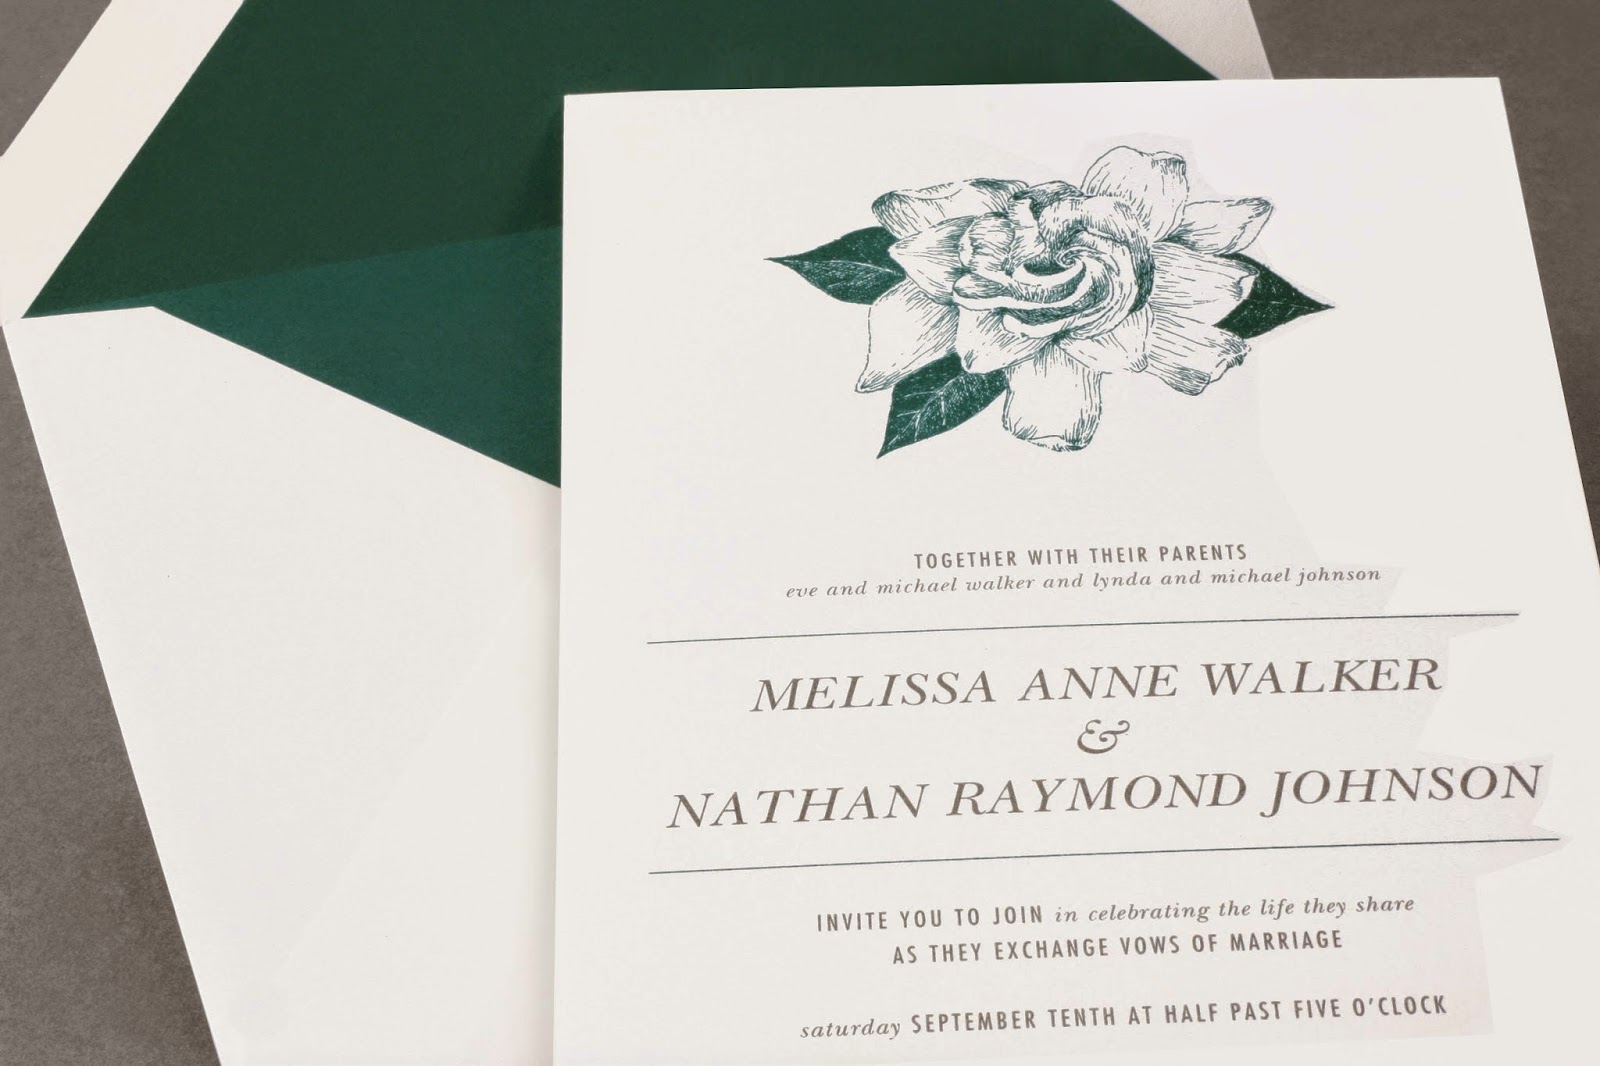 Vera Wang Wedding Invitation With Etched Teal Flower Motif